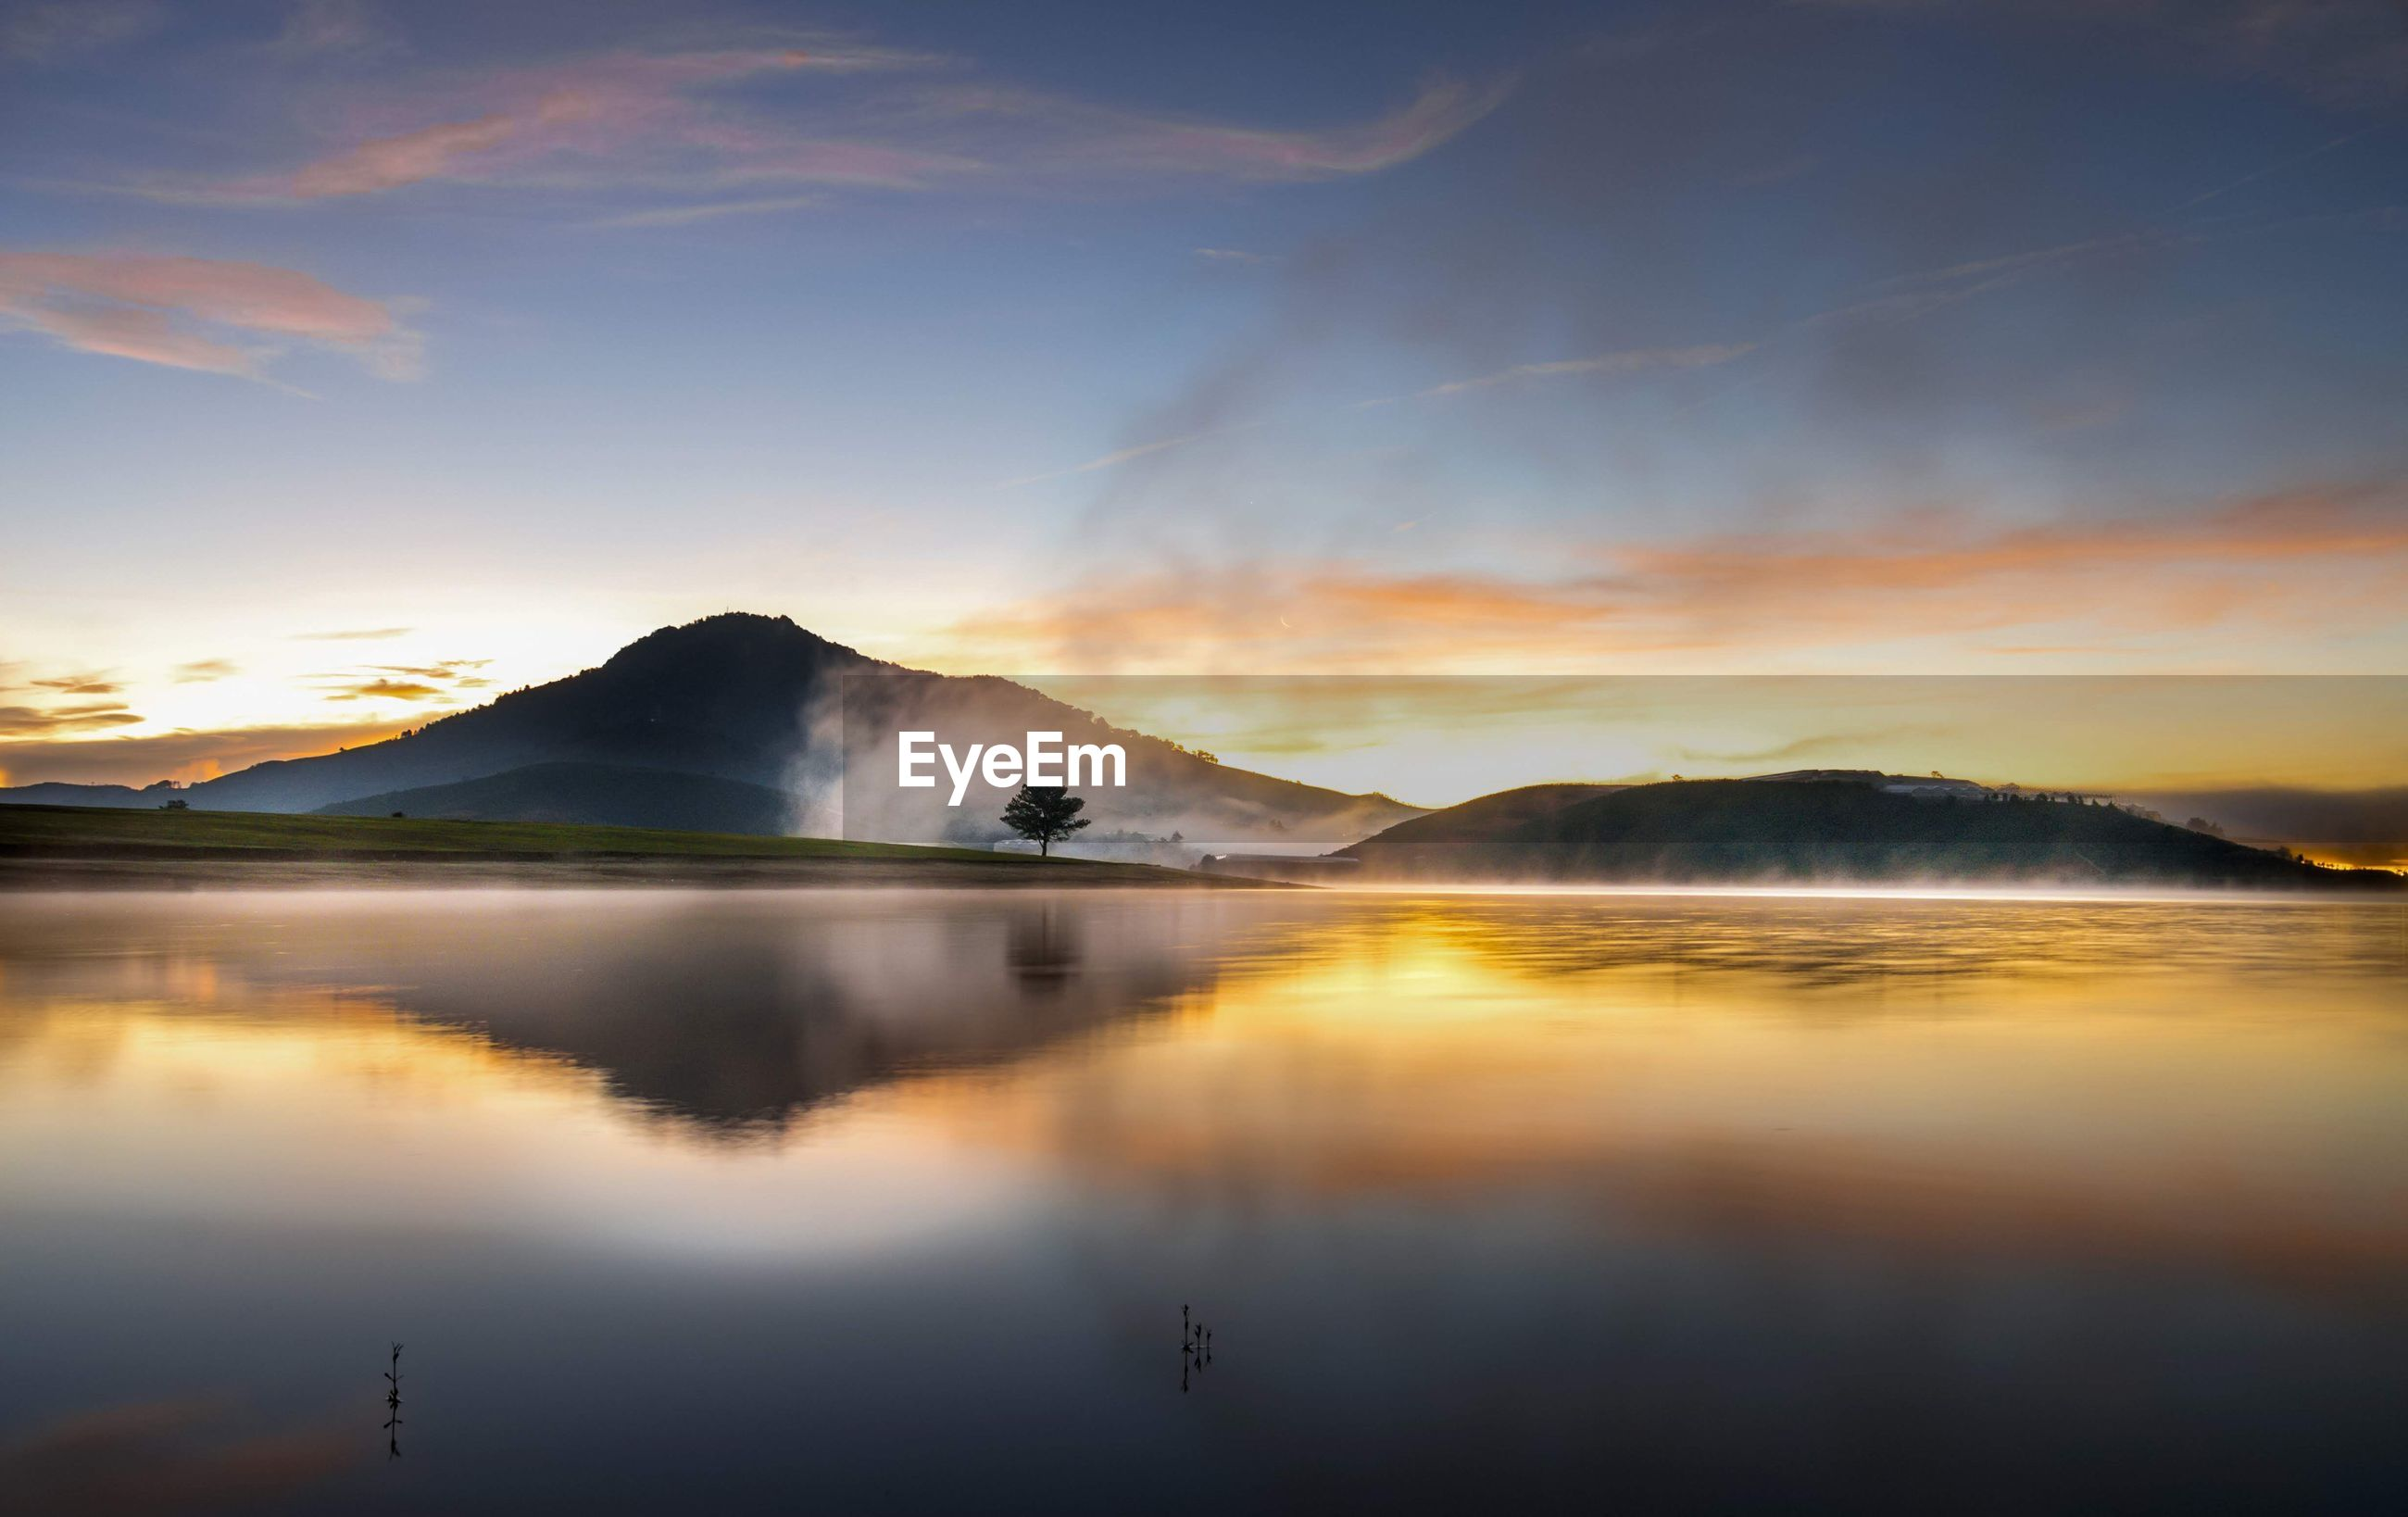 SCENIC VIEW OF LAKE BY MOUNTAIN AGAINST SKY DURING SUNSET